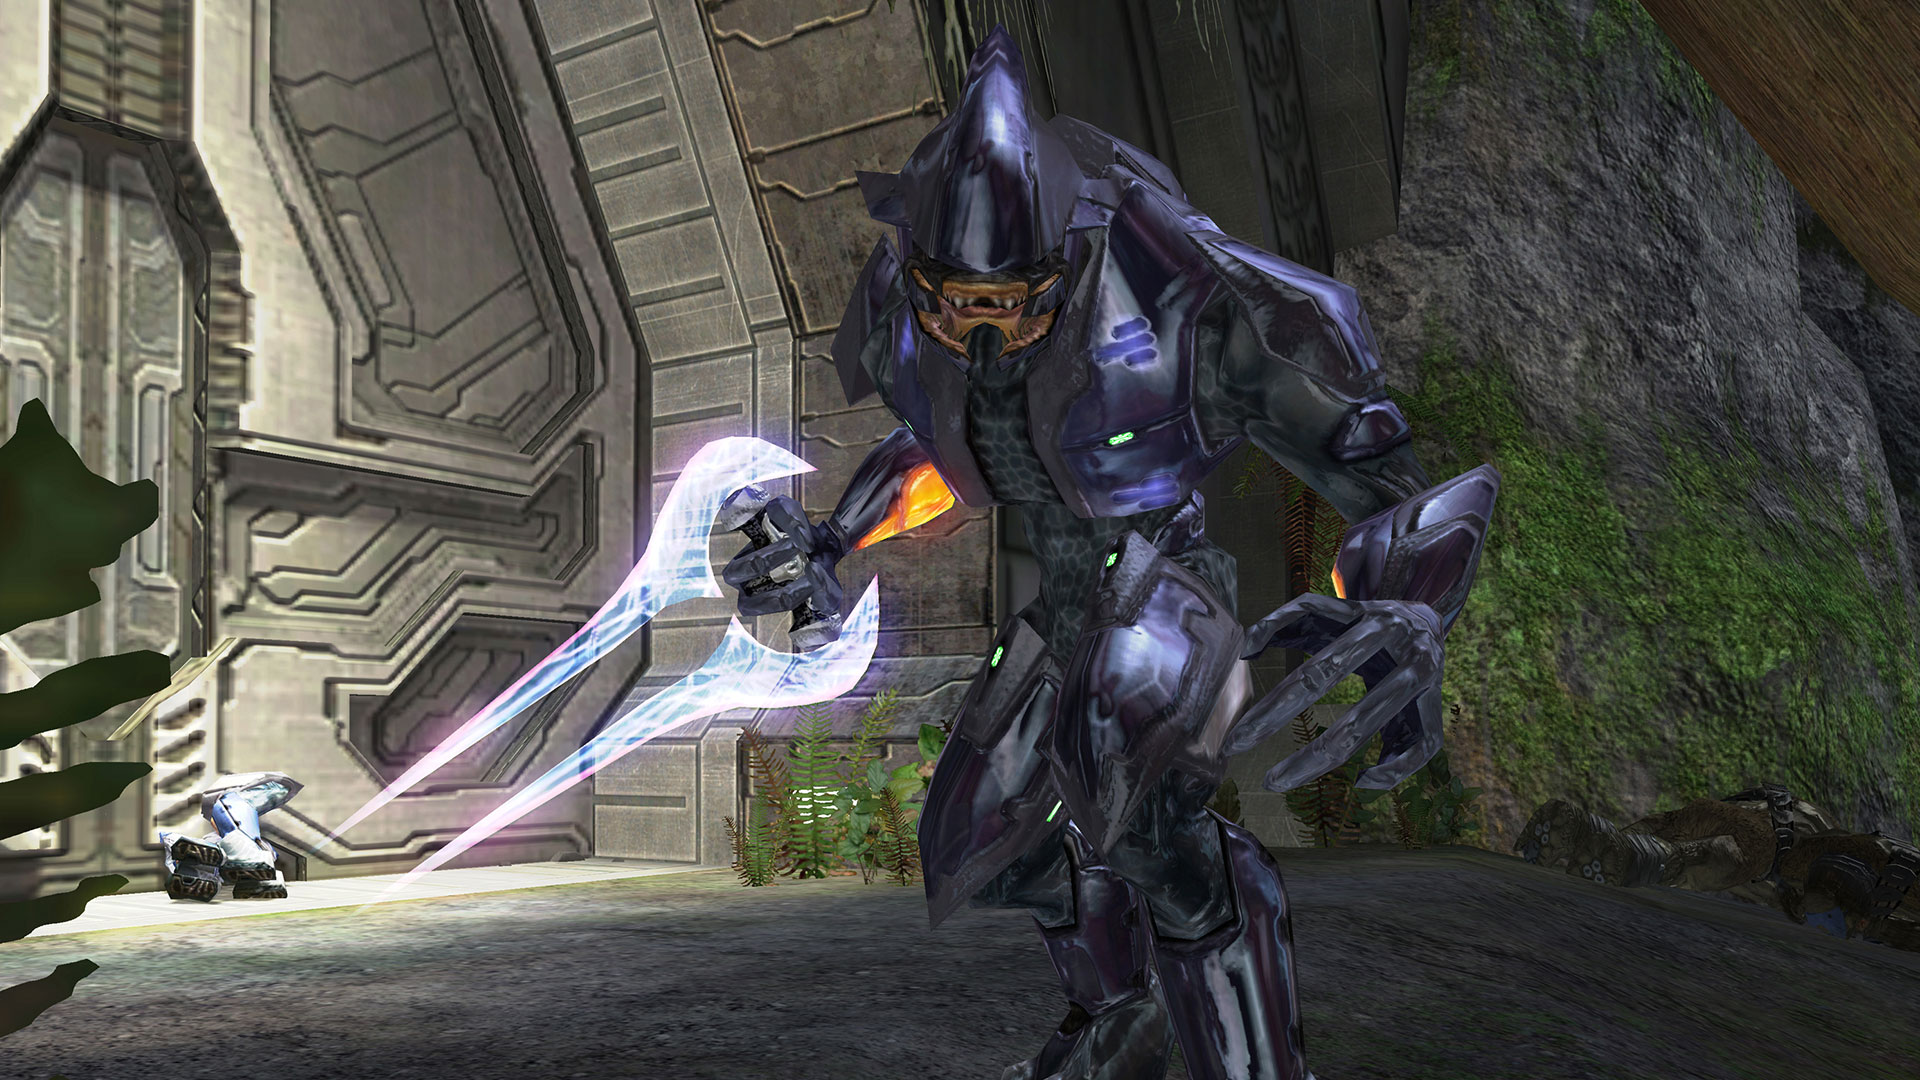 Rozsáhlá galerie Halo: The Master Chief Collection 101378